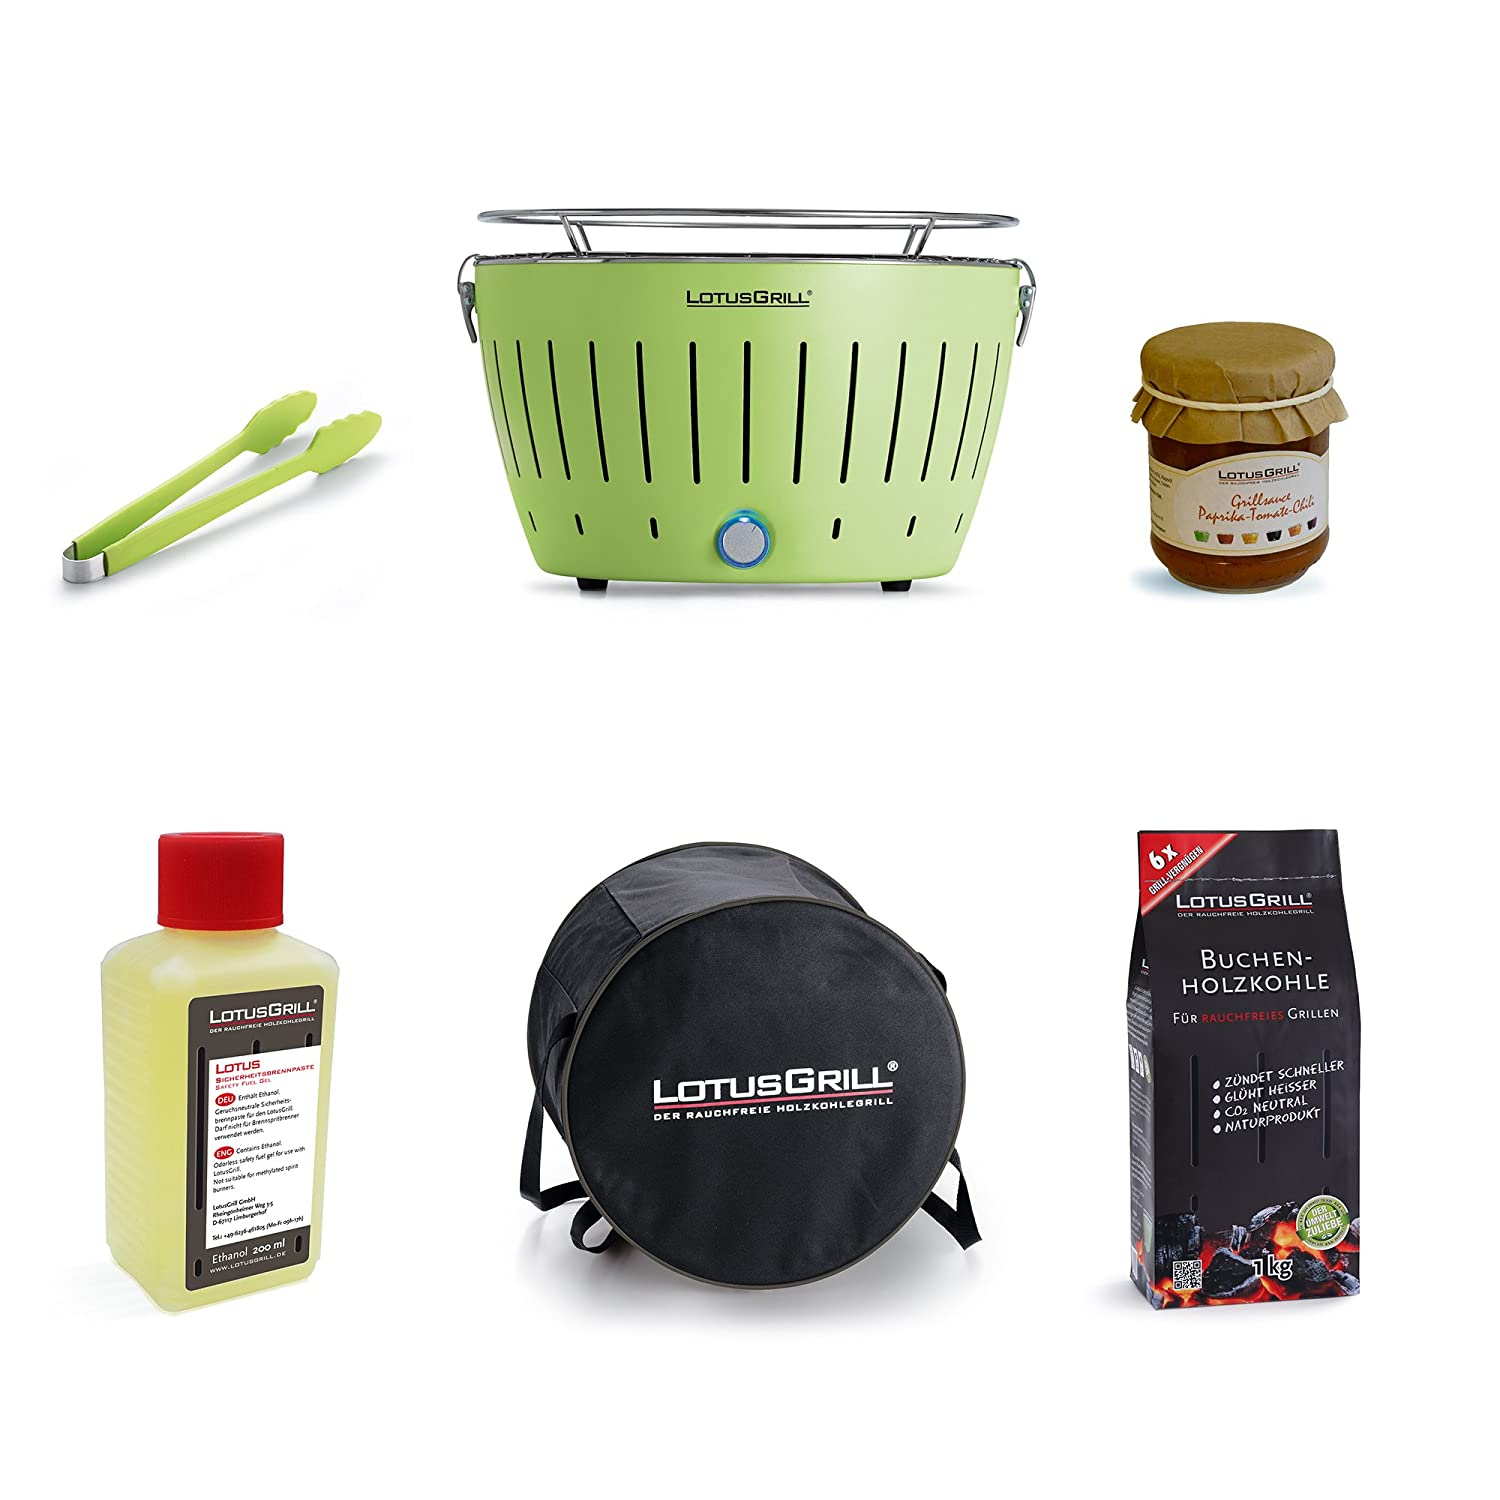 LotusGrill Starter Set 1x LotusGrill Lime Green 1x beech charcoal 1 kg, 1x burning paste 200 ml, 1x LotusGrill tongs lime green, 1x transport tray, 1 x LotusGrill Special Grillsauce - The smokeless charcoal grill / table grill Only the latest technology!